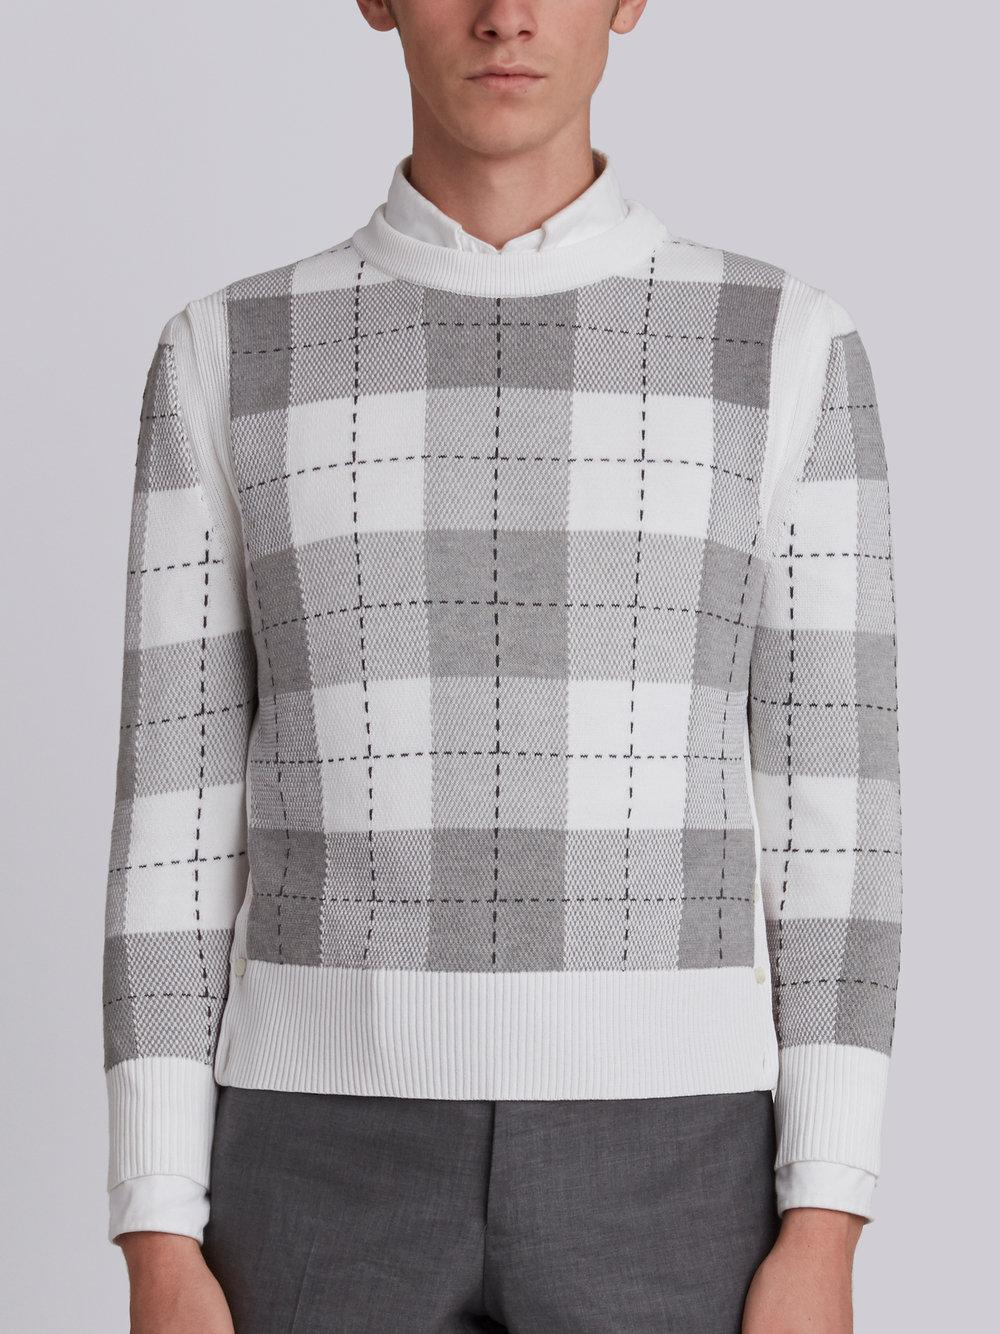 Clearance 2018 Classic Crewneck Pullover With Large Plaid Intarsia In Cotton Crepe - Red Thom Browne Online Shop HmXat